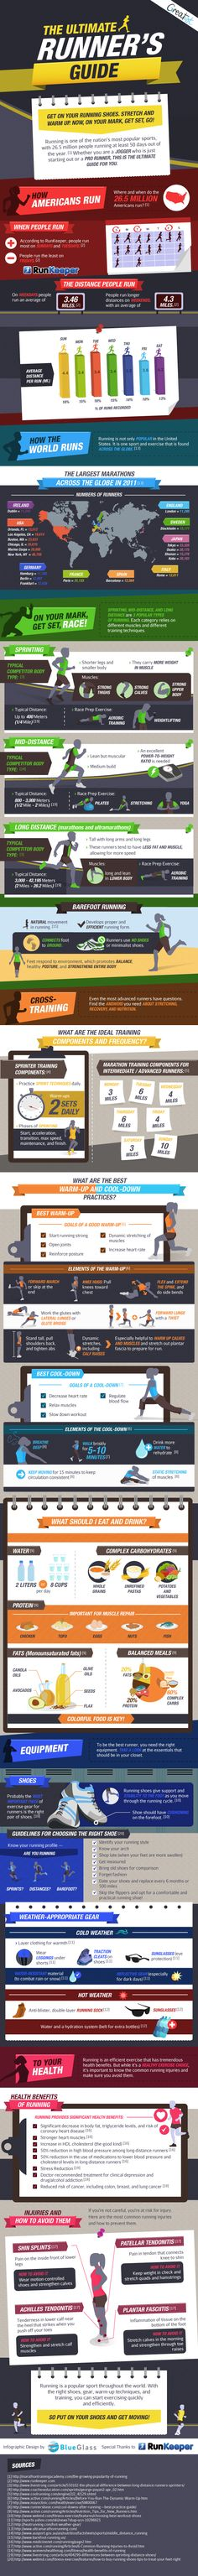 Interesting facts about runners